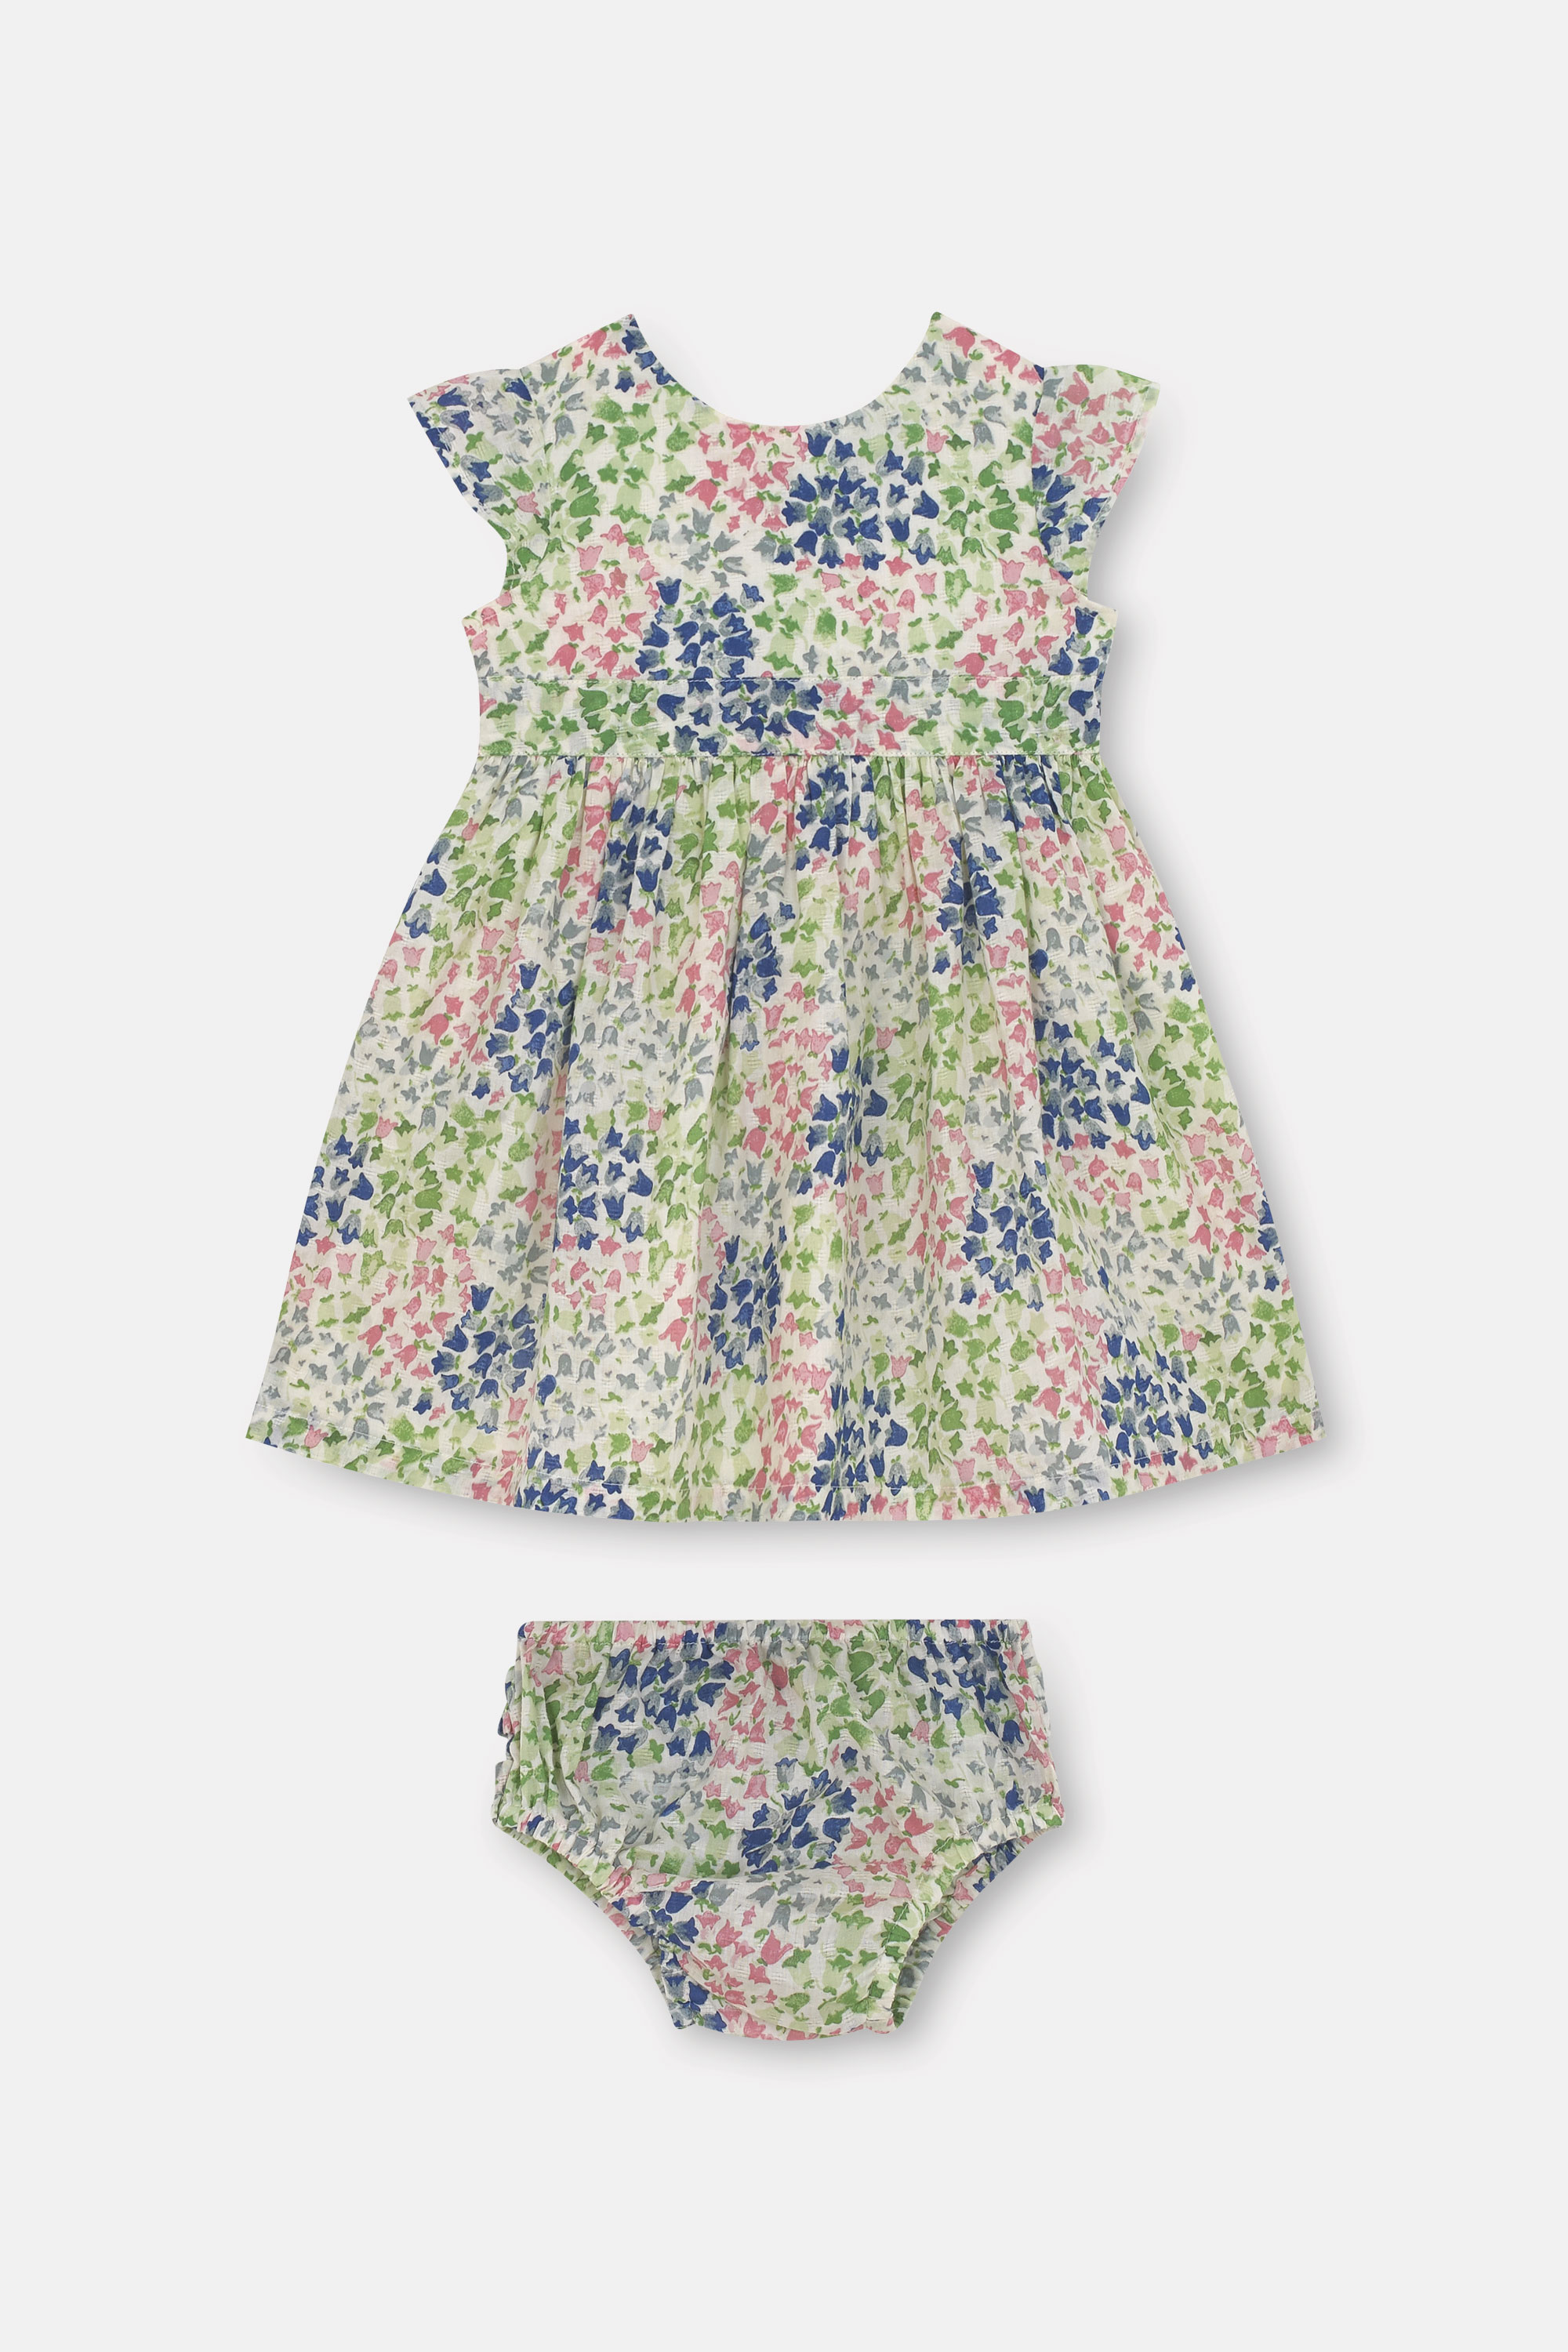 Cath Kidston Tiny Painted Bluebell Baby Ayda Dress in Warm Cream, 18-24 Mo